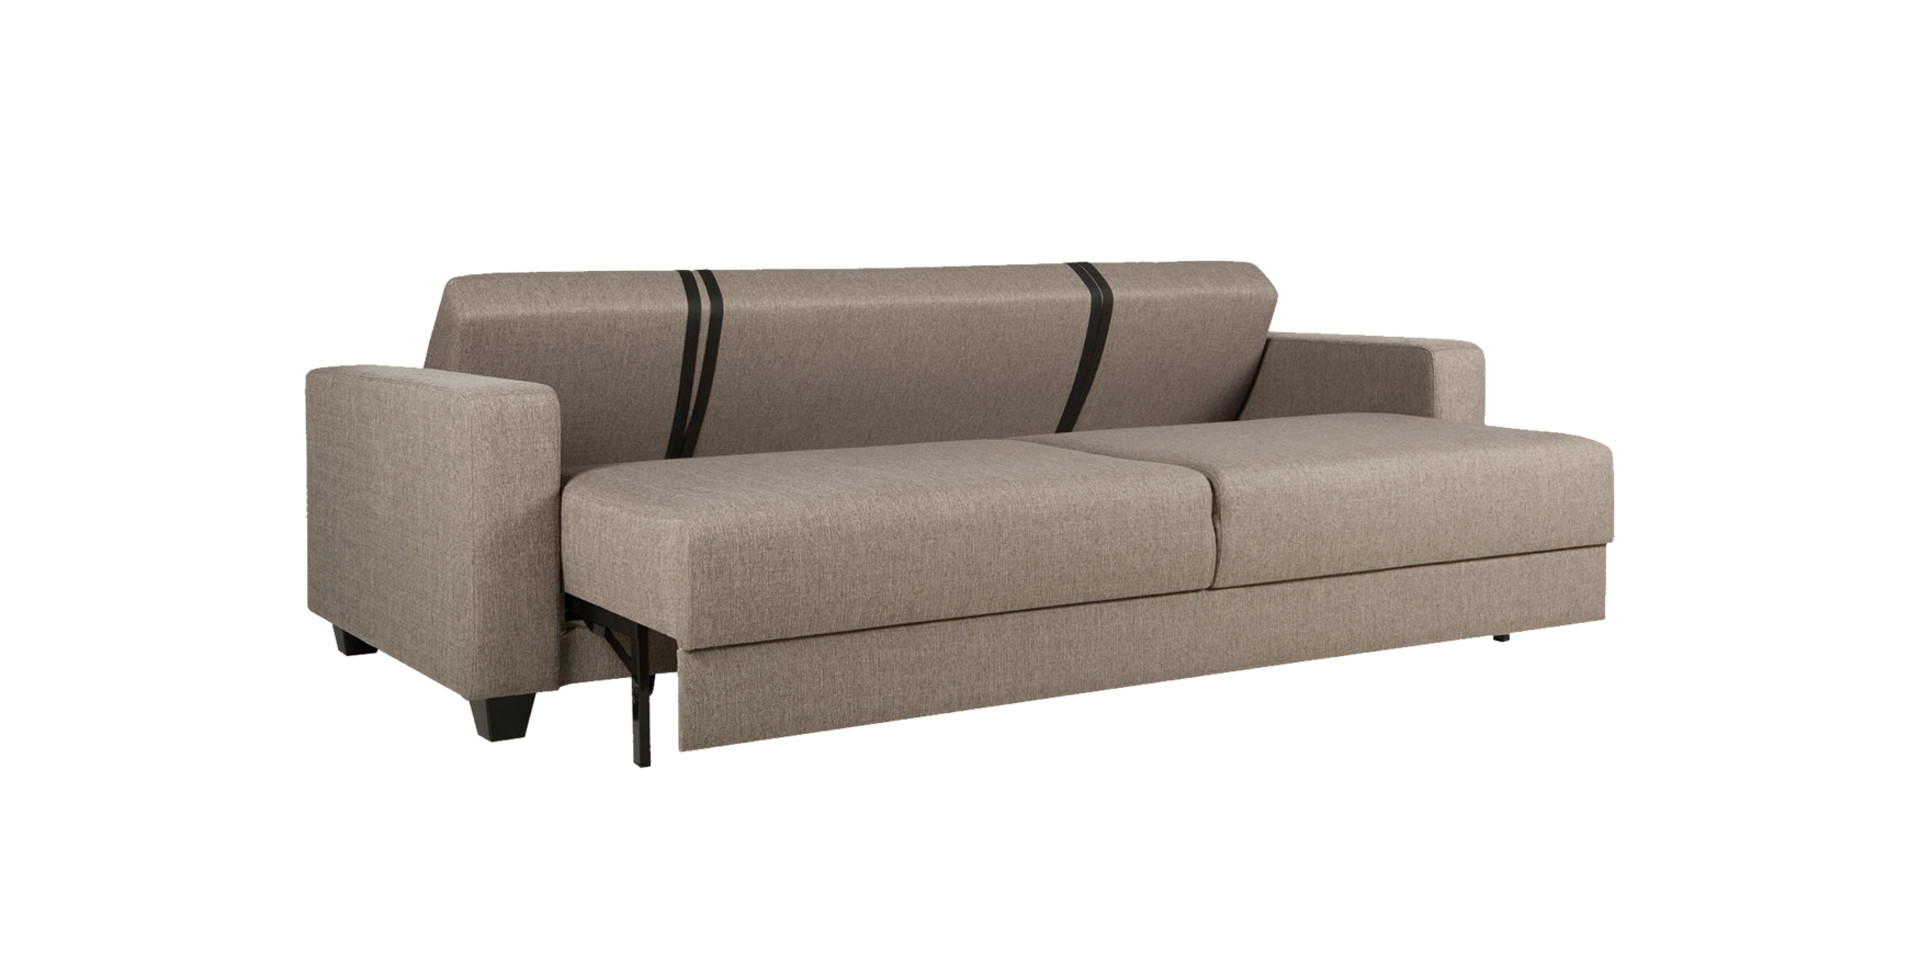 sits-bari-canape-convertible-sofa_bed_cedros3_light_brown_6